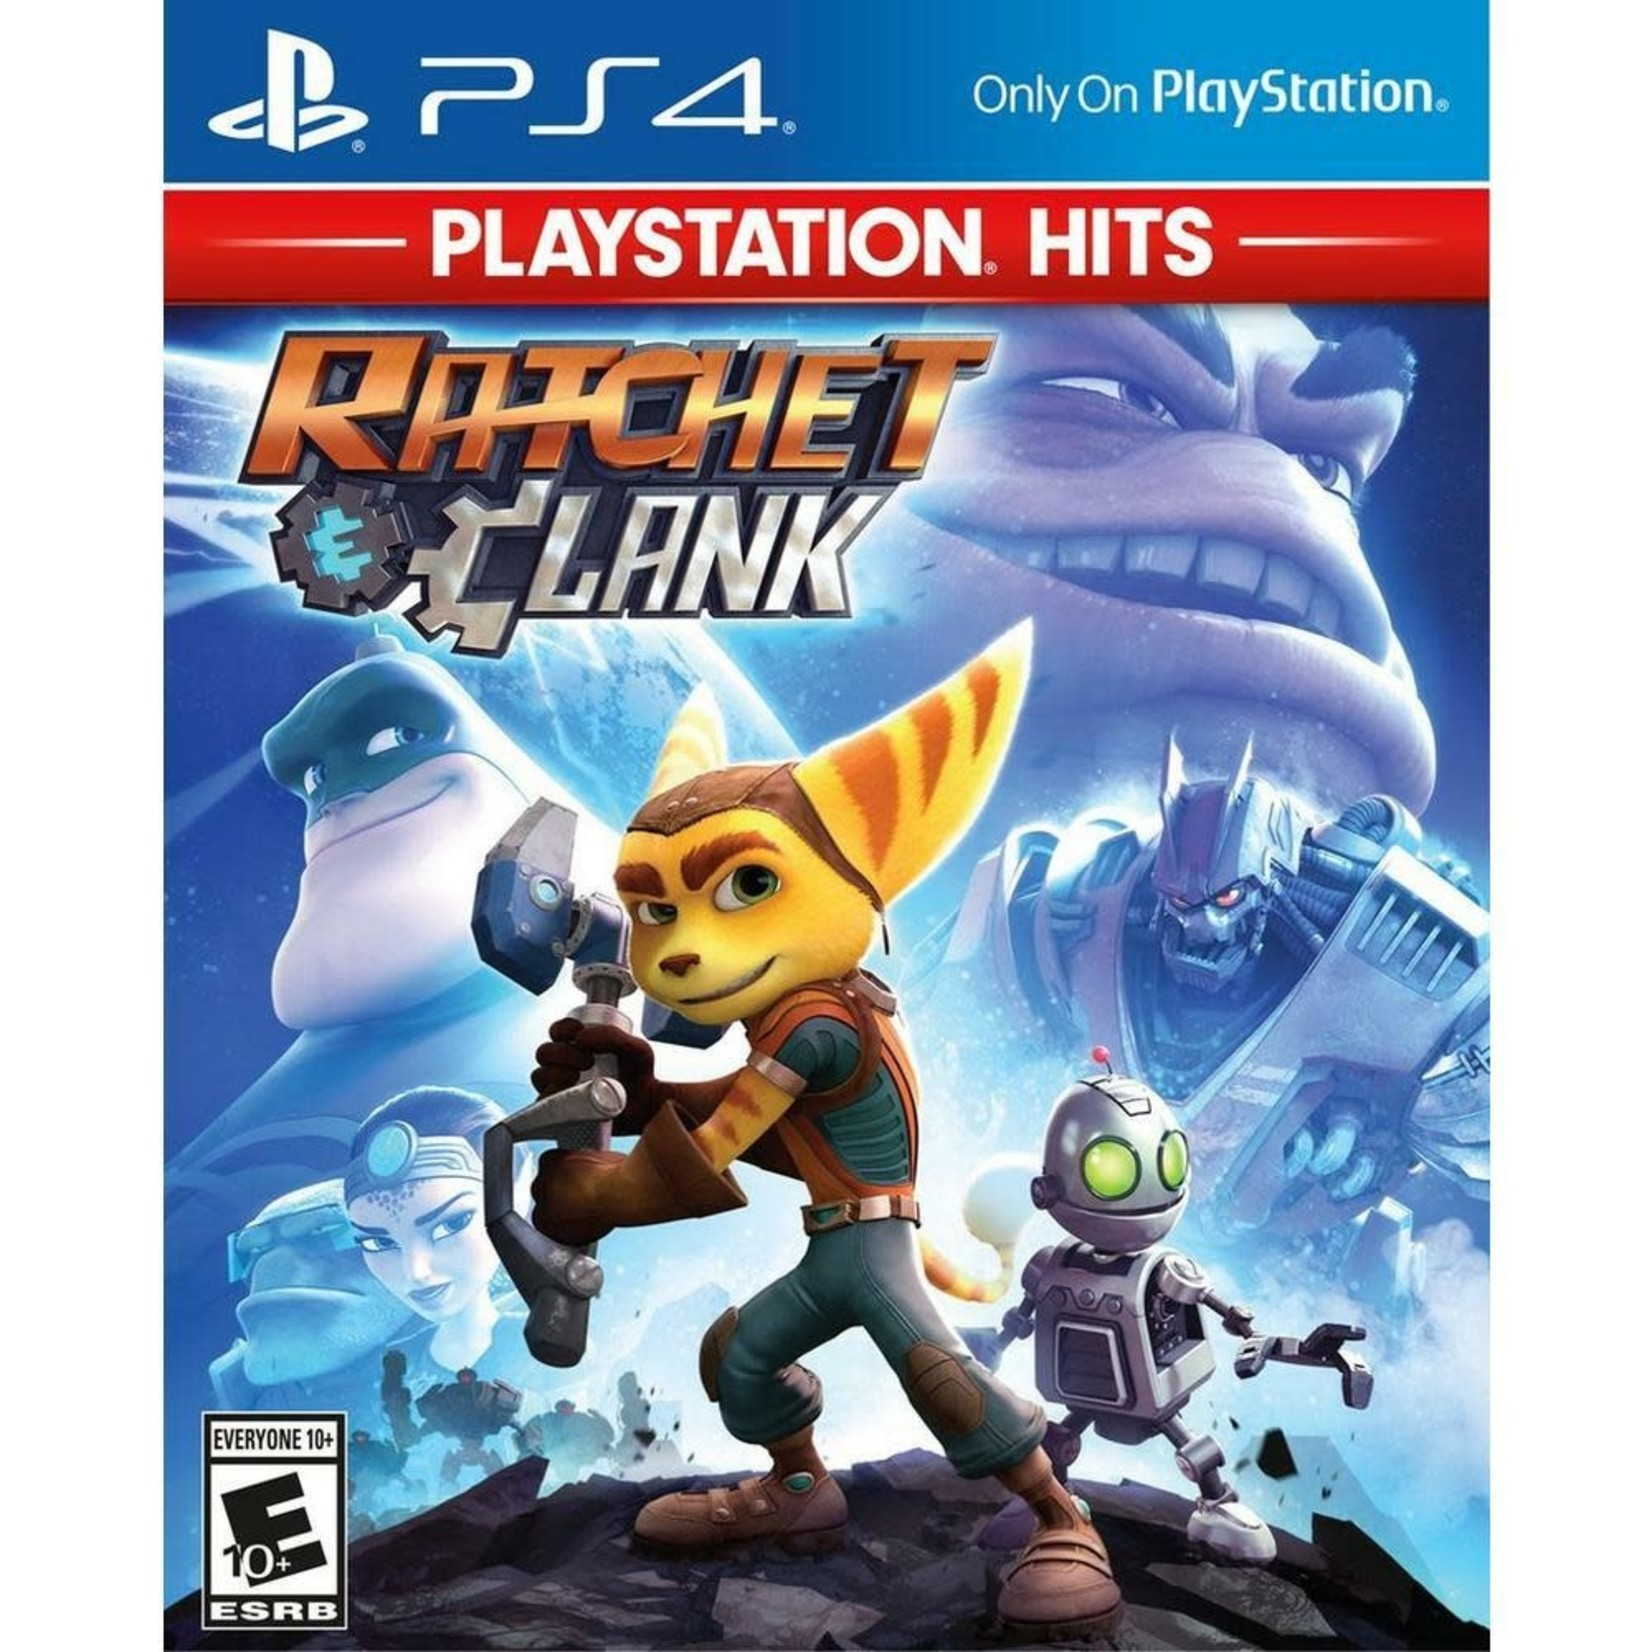 PS4U-Ratchet and Clank